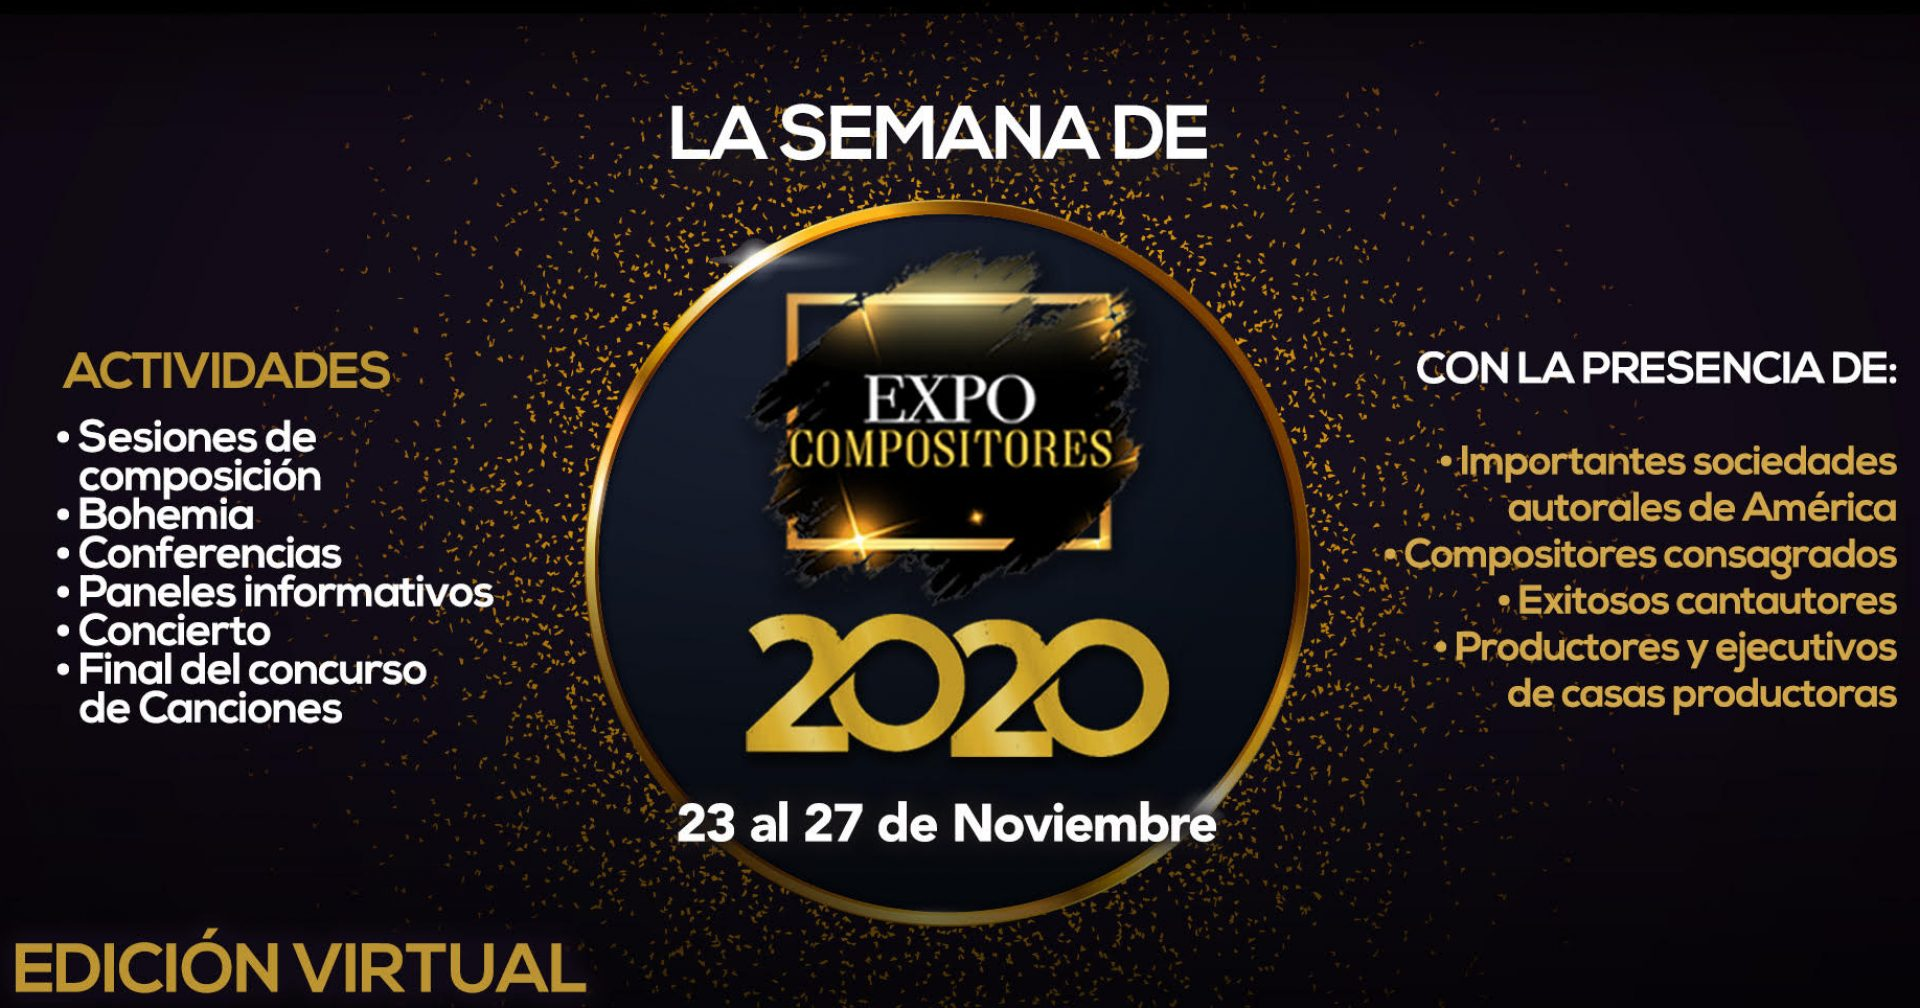 Expo Compositores 2020